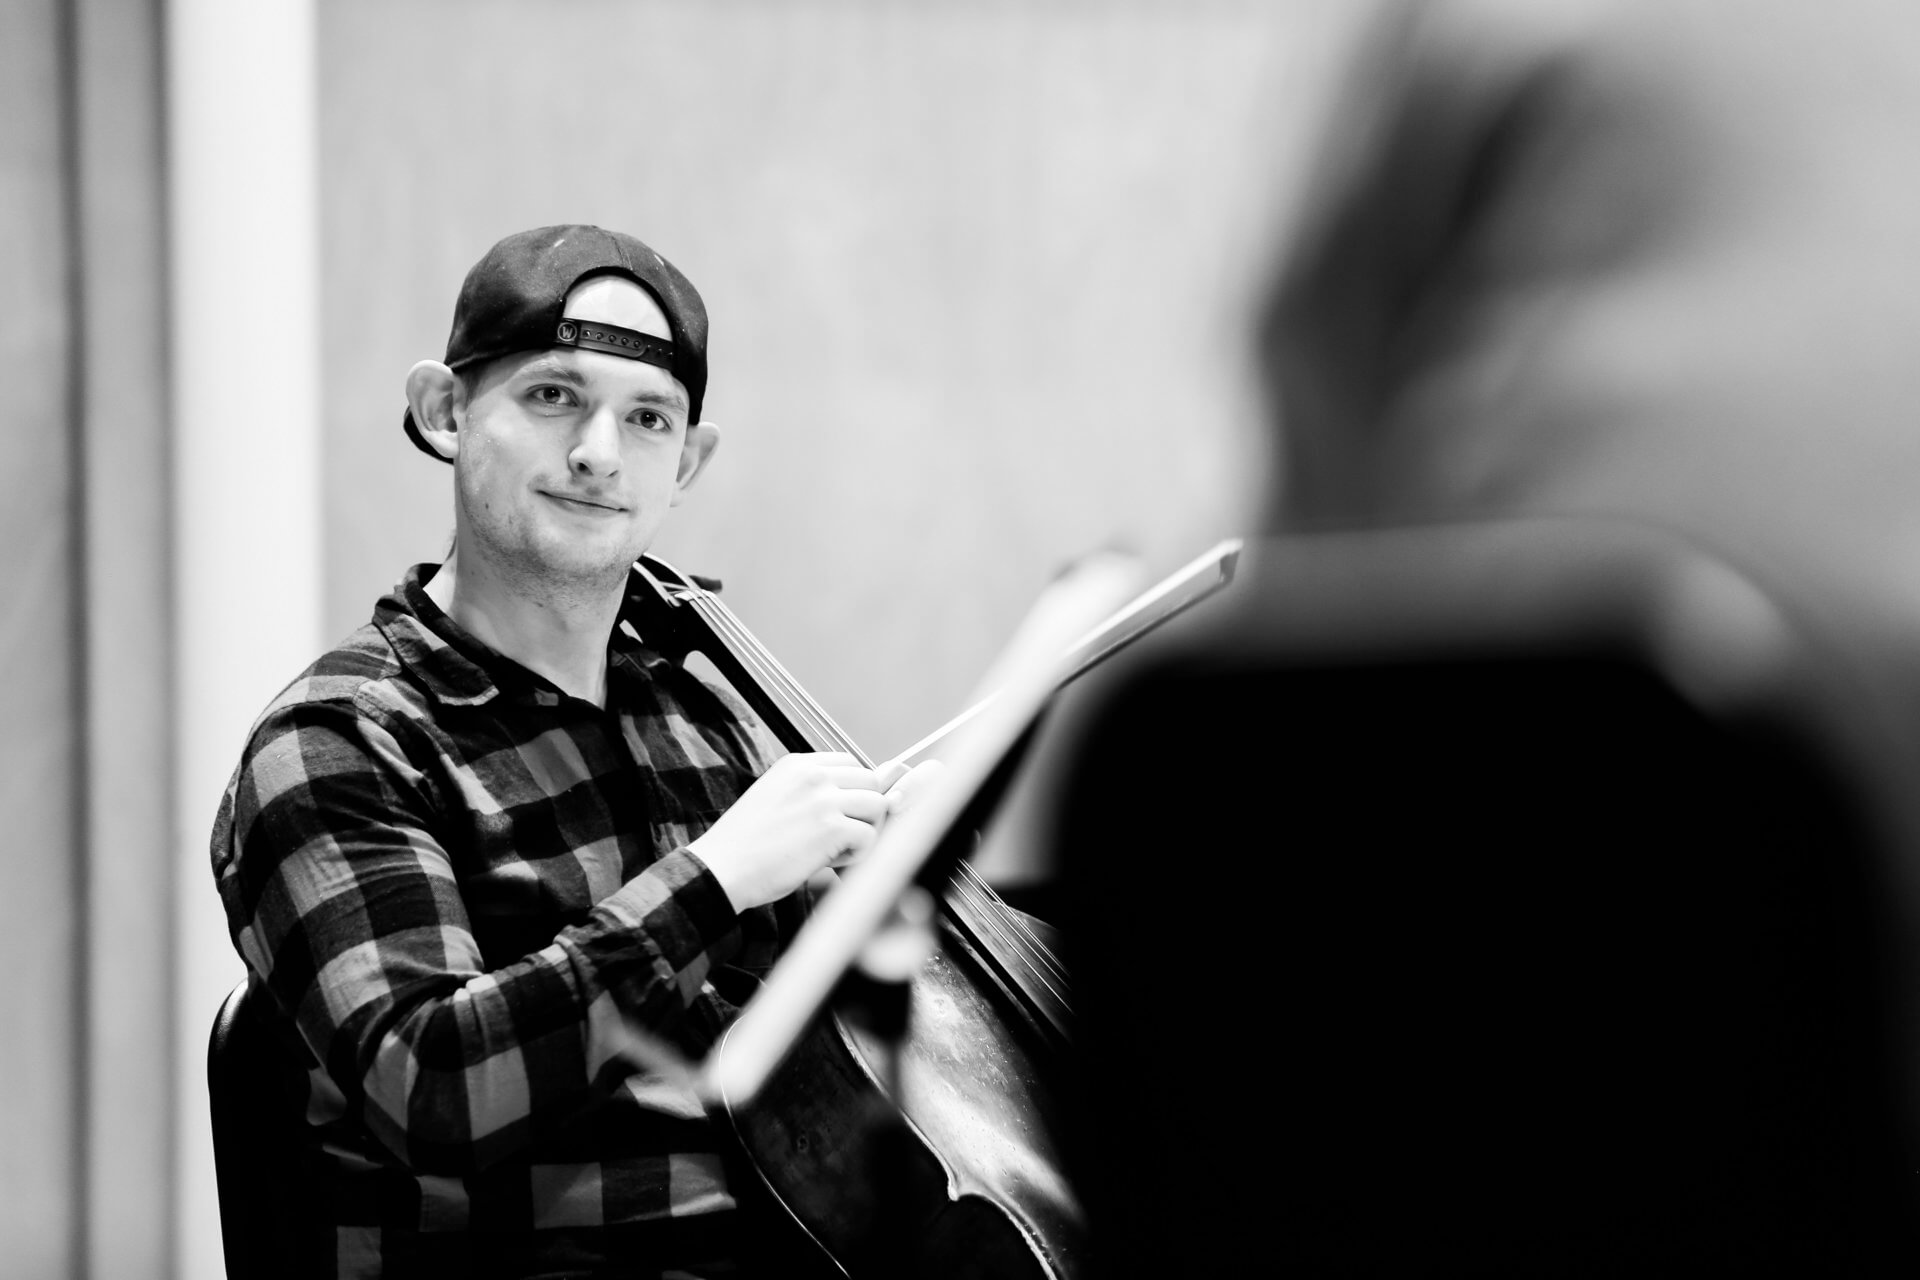 B&W image of cellist and RCS student Cameron Smith engaging with a fellow Studio Collective musician